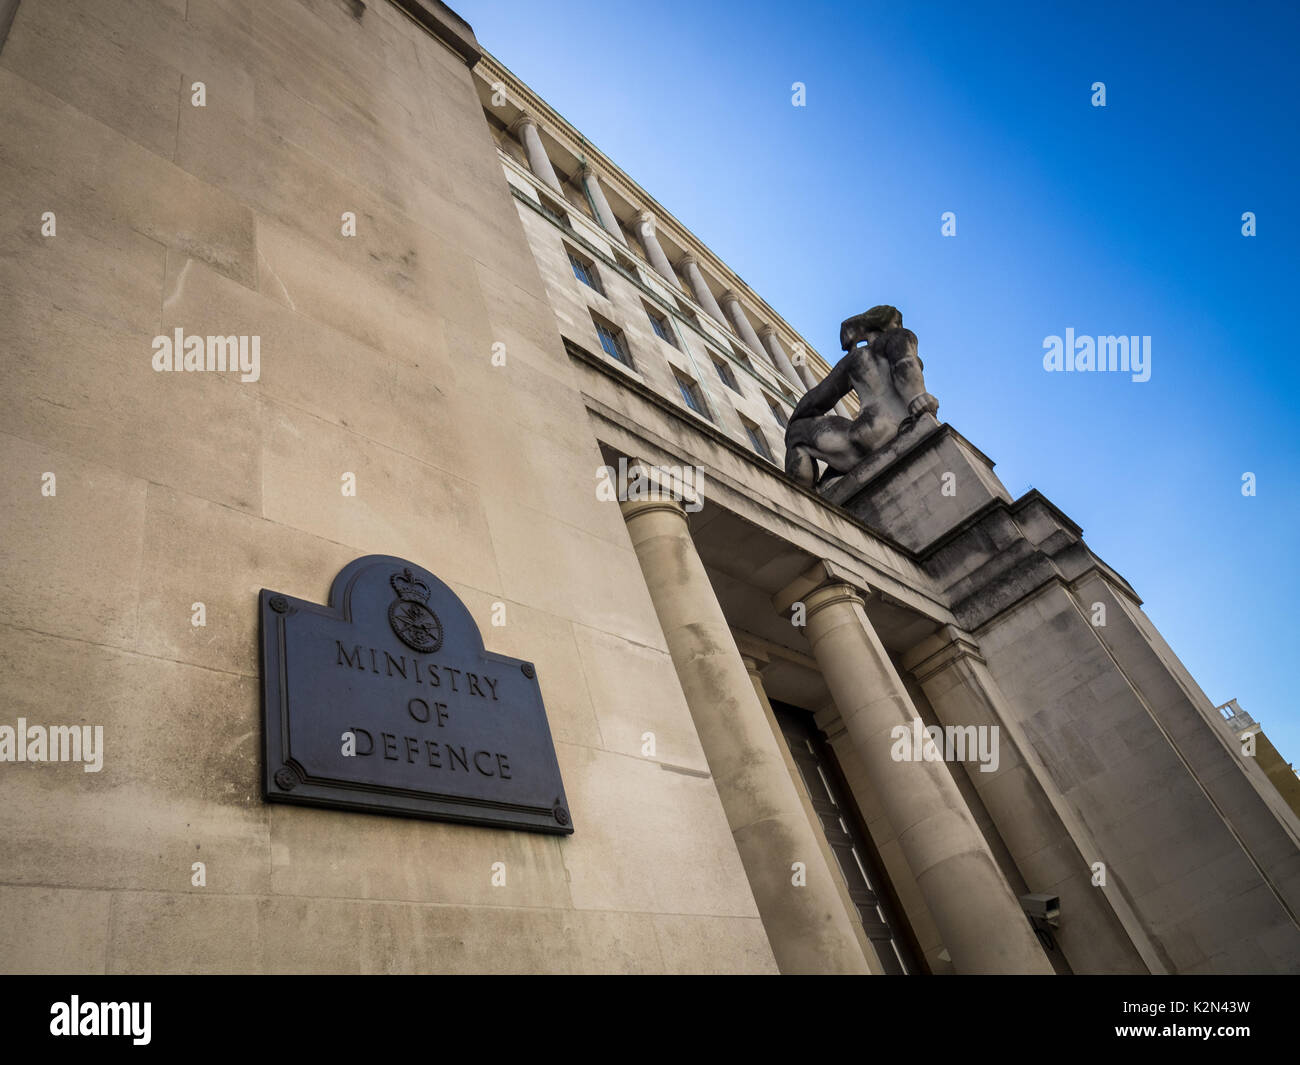 Ministry of Defence London ( MOD ) building in Whitehall and Horse Guards Avenue in central London UK - Stock Image